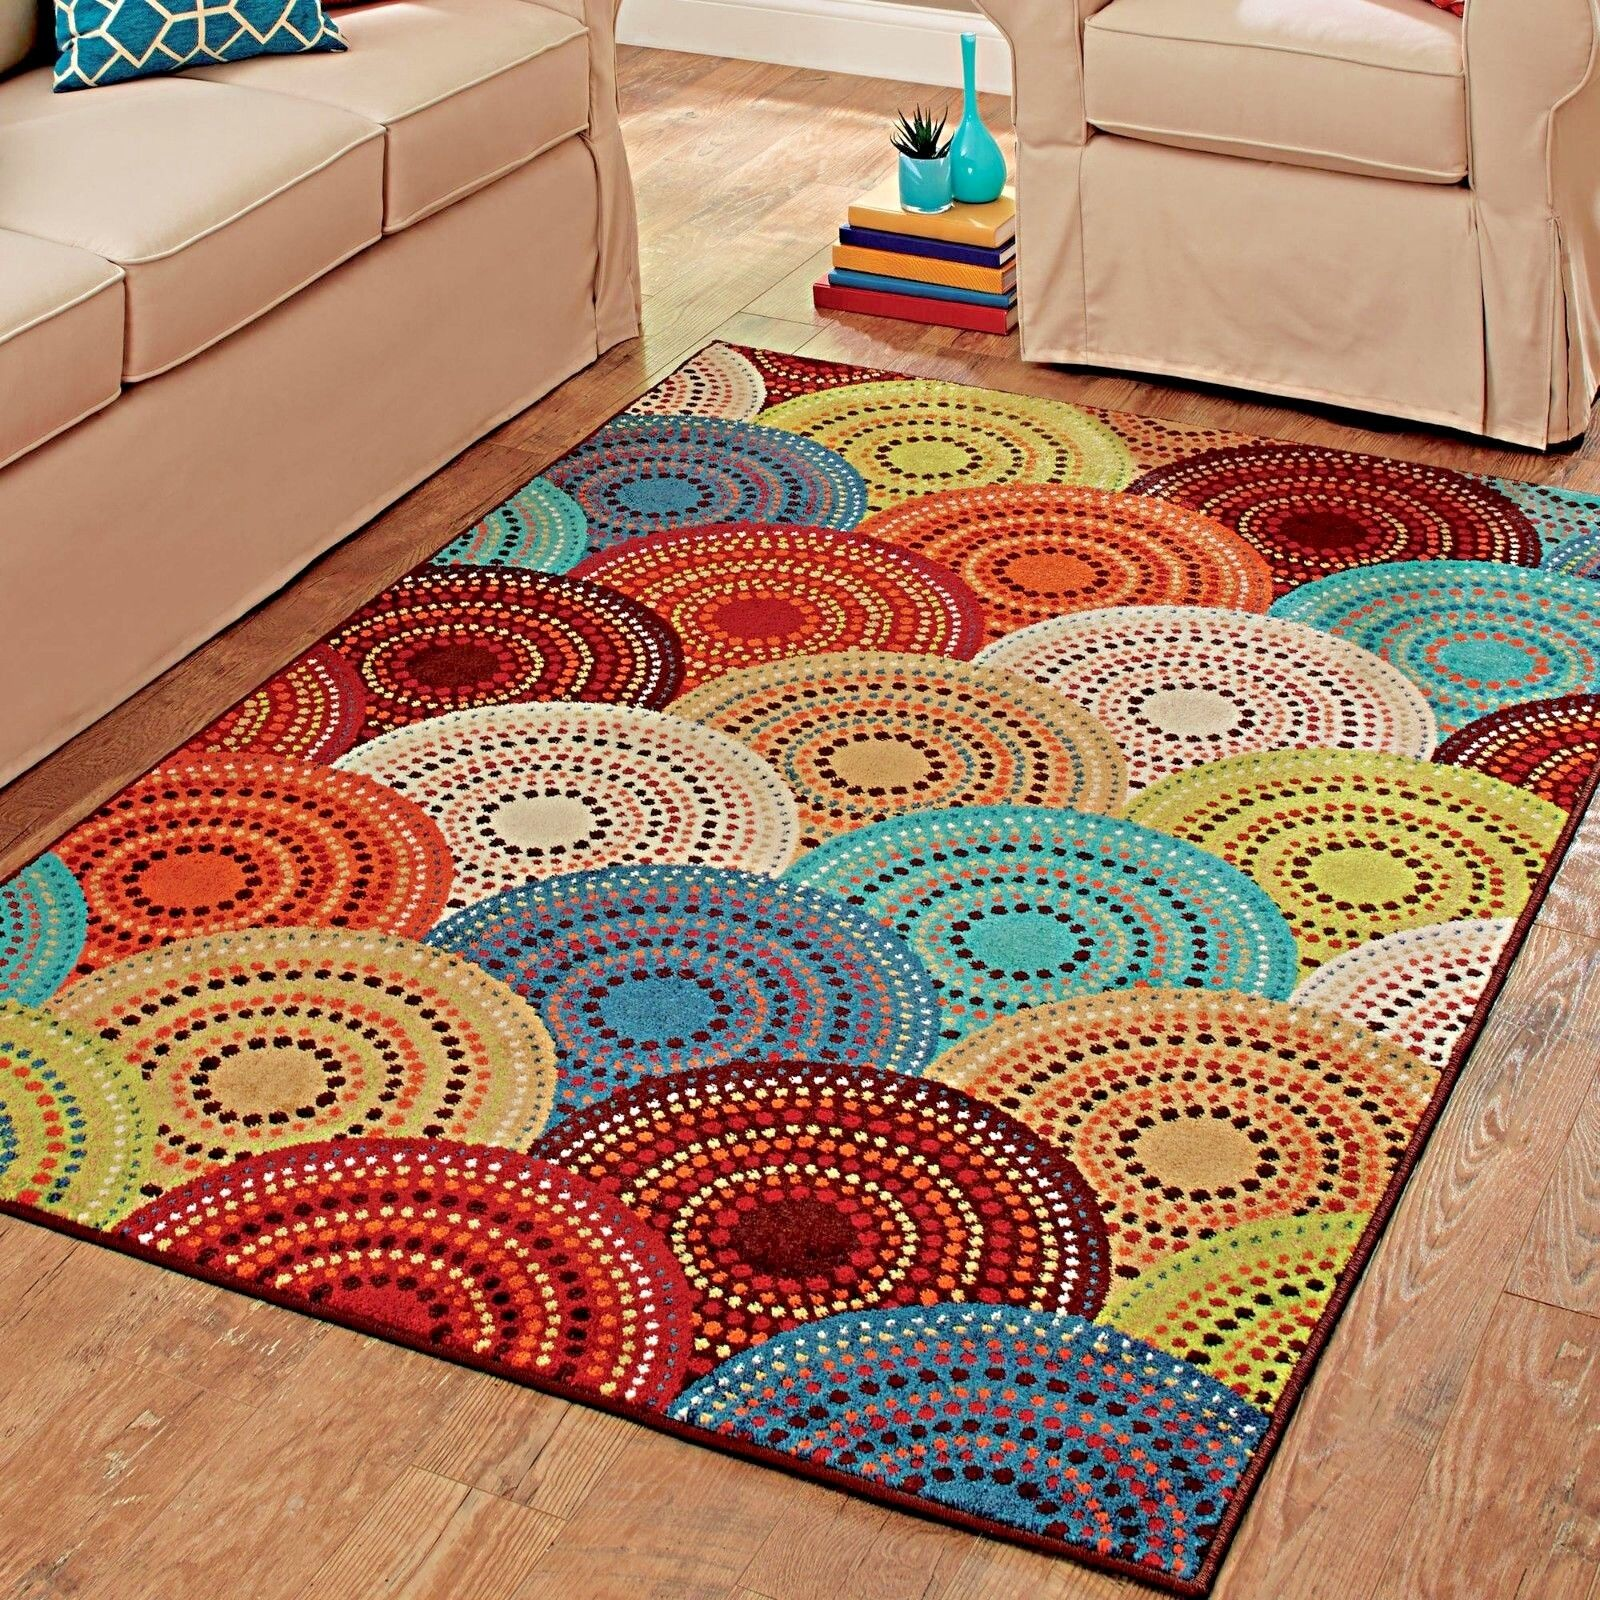 Cheap rugs for sale image of mohawk kitchen rugs cheap for Modern area rugs for sale